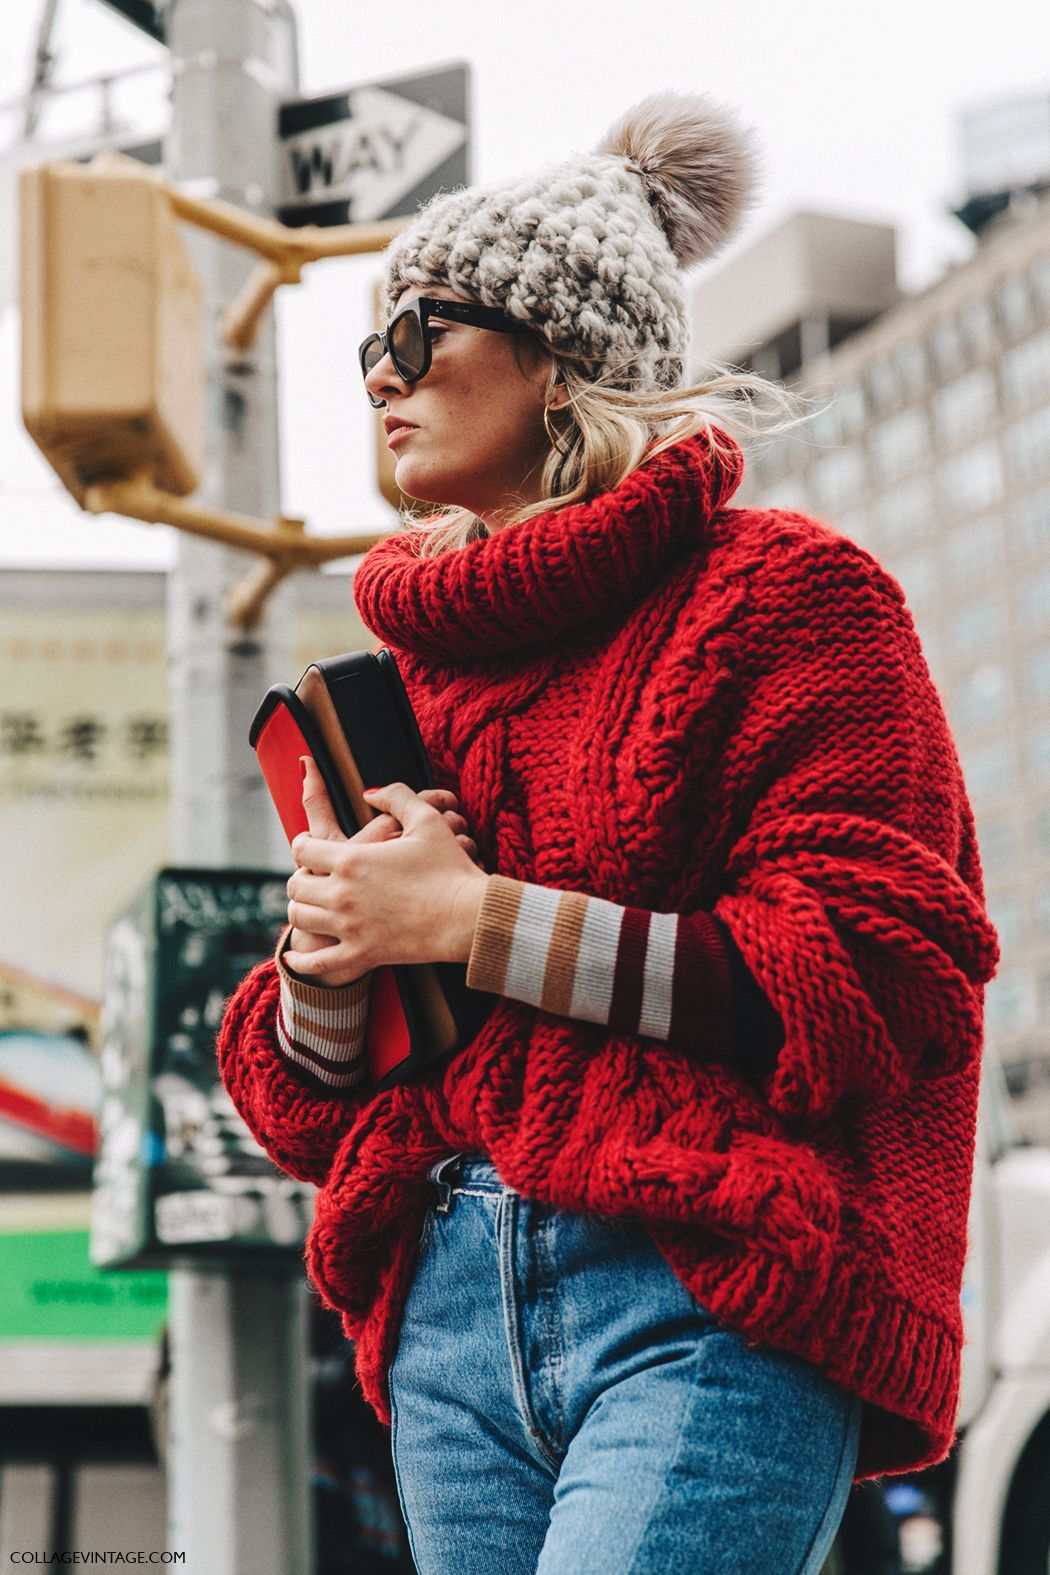 NYFW-NewYork_Fashion Week-Fall Winter 17 Street Style-Camille Charriere Vetements_Jeans,Red Sweater-Beanie-Snake Boots 2